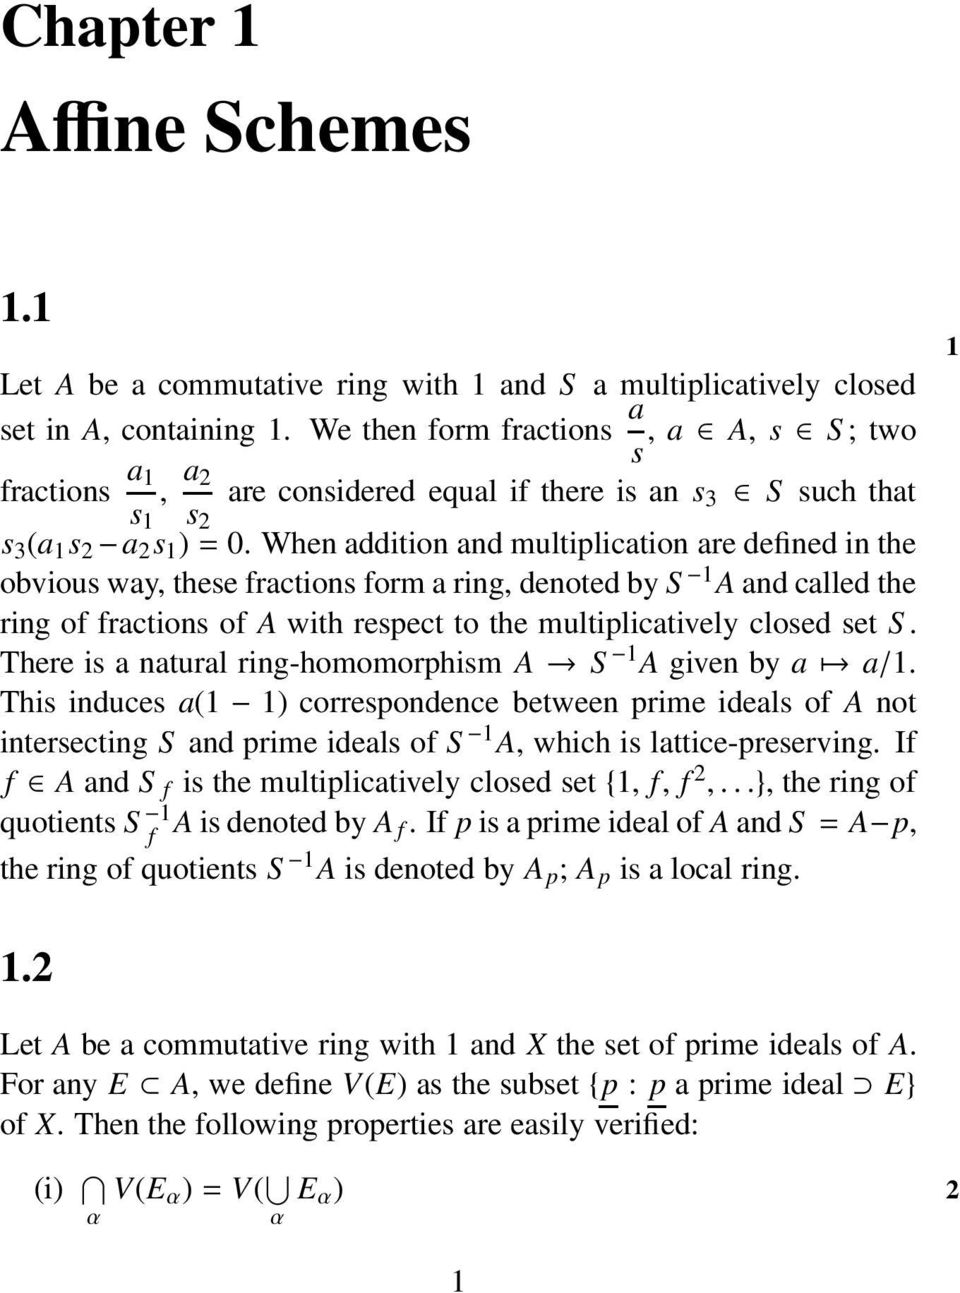 When addition and multiplication are defined in the obvious way, these fractions form a ring, denoted by 1 and called the ring of fractions of with respect to the multiplicatively closed set.